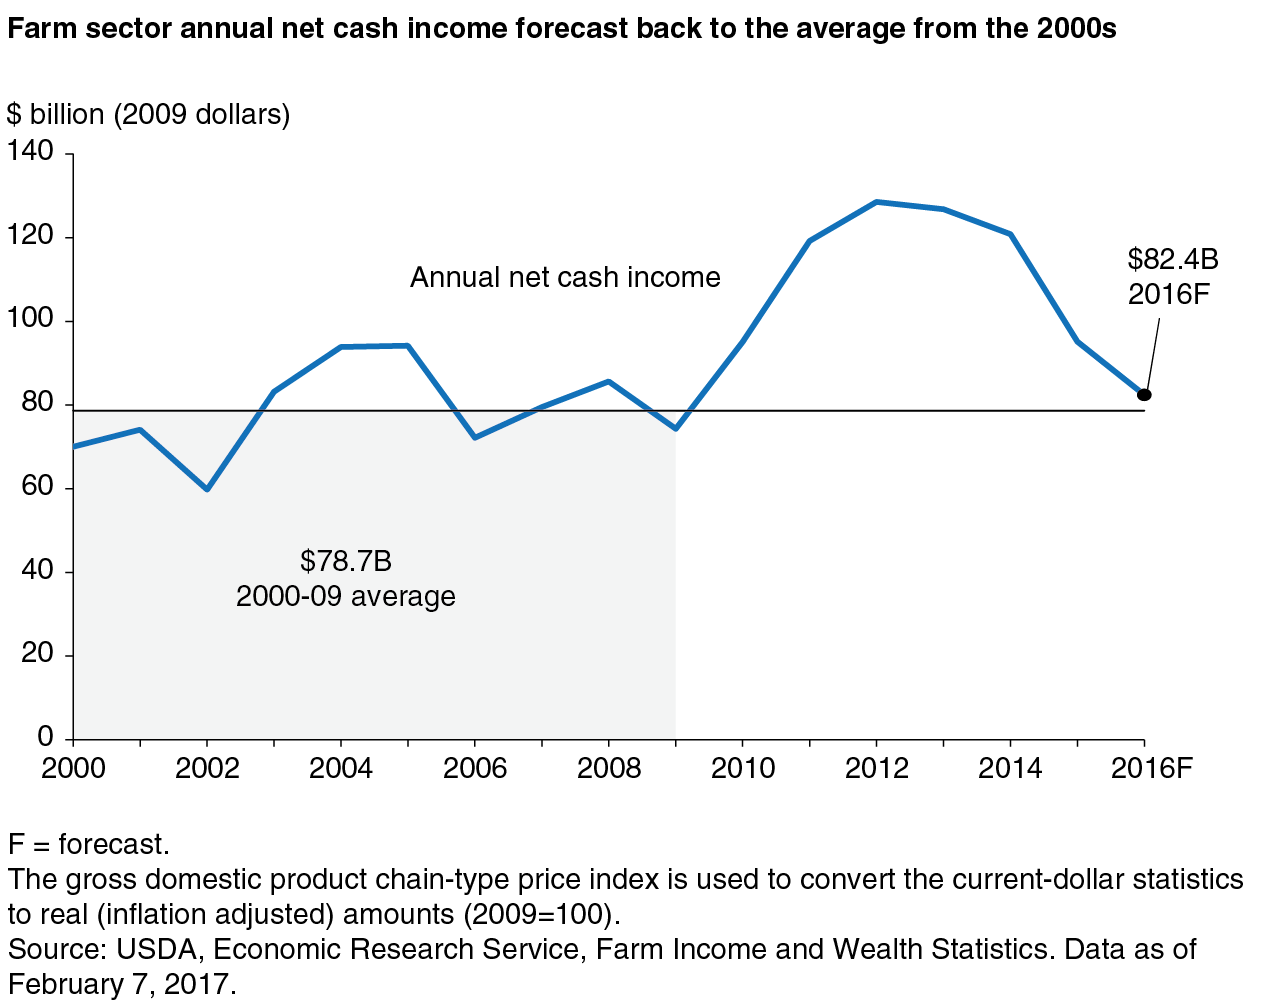 USDA ERS - Examining Farm Sector and Farm Household Income